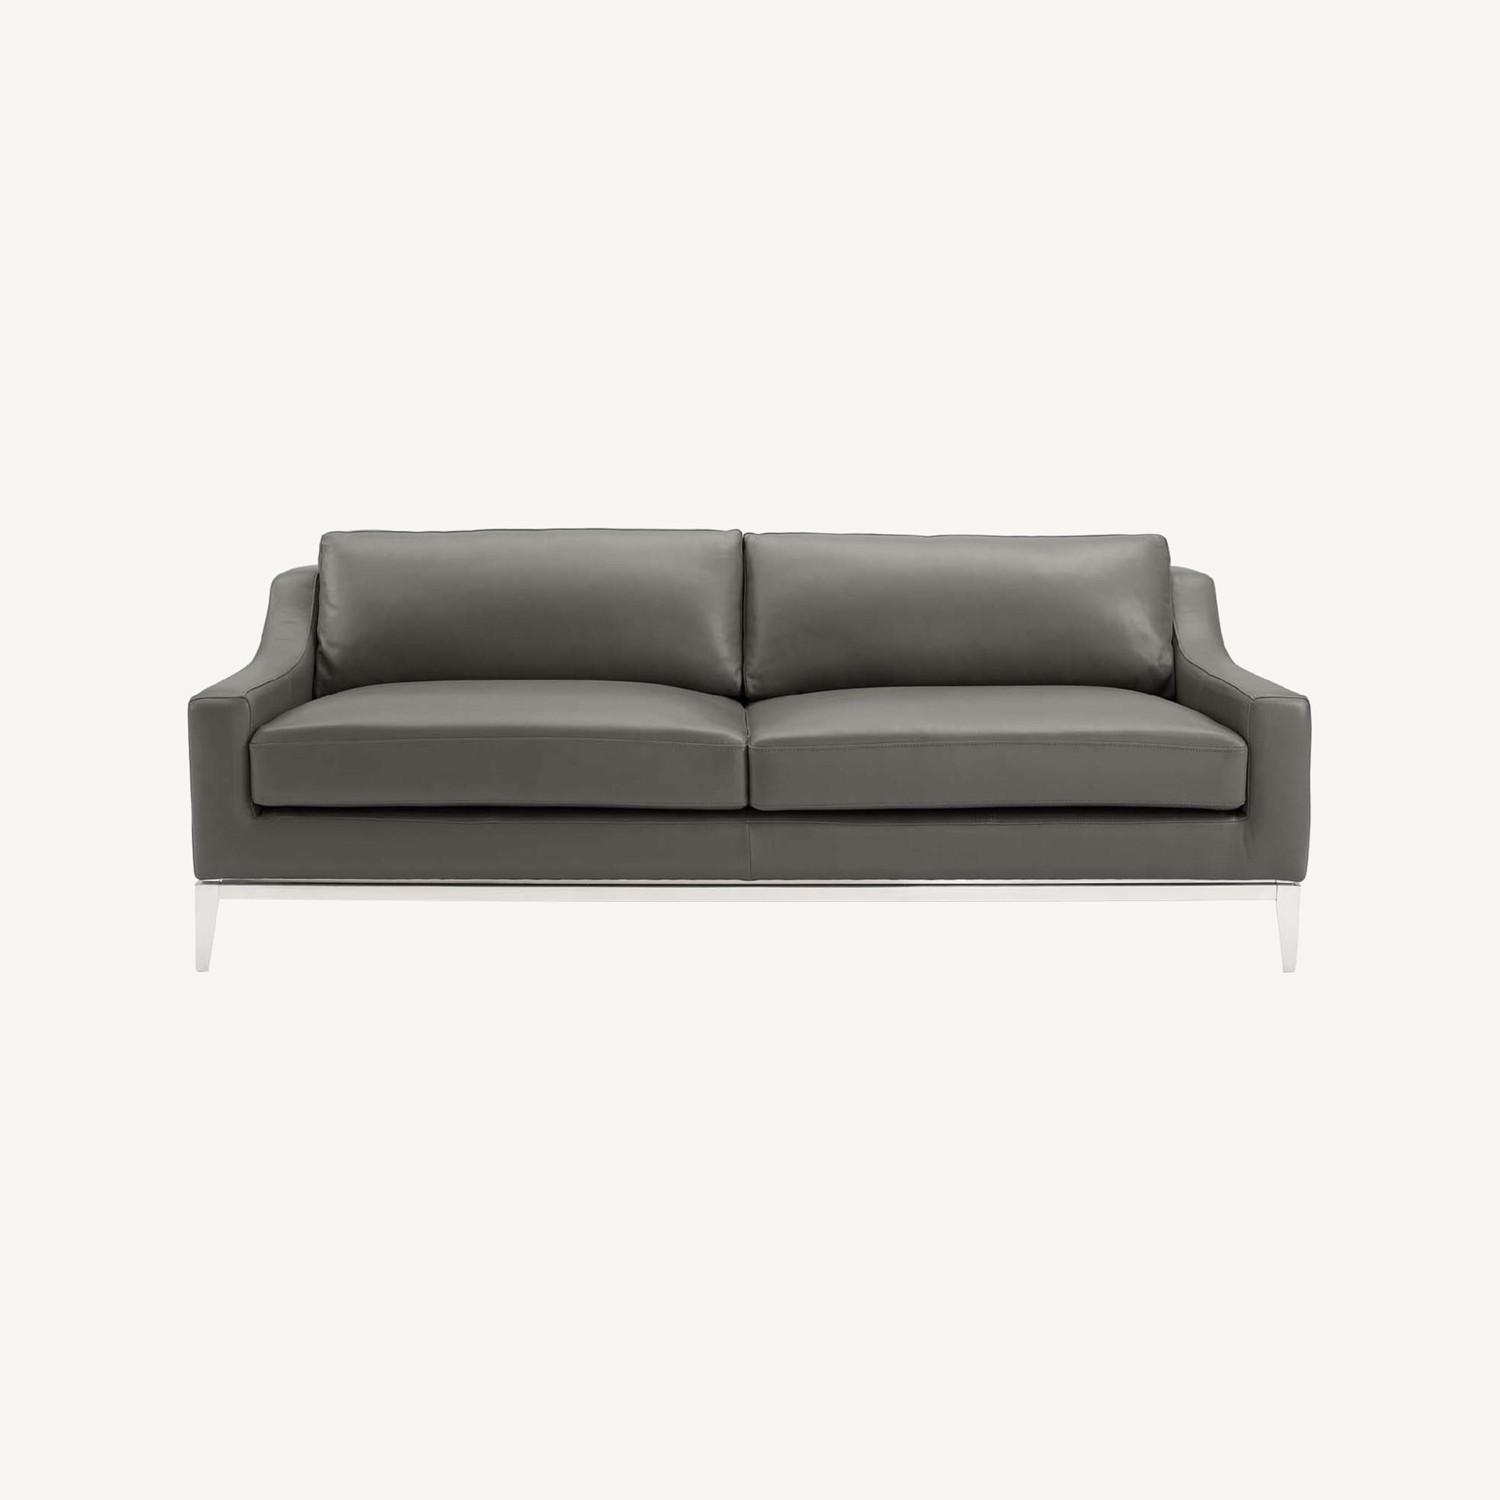 Sofa In Gray Leather Upholstery W/ Steel Base - image-9